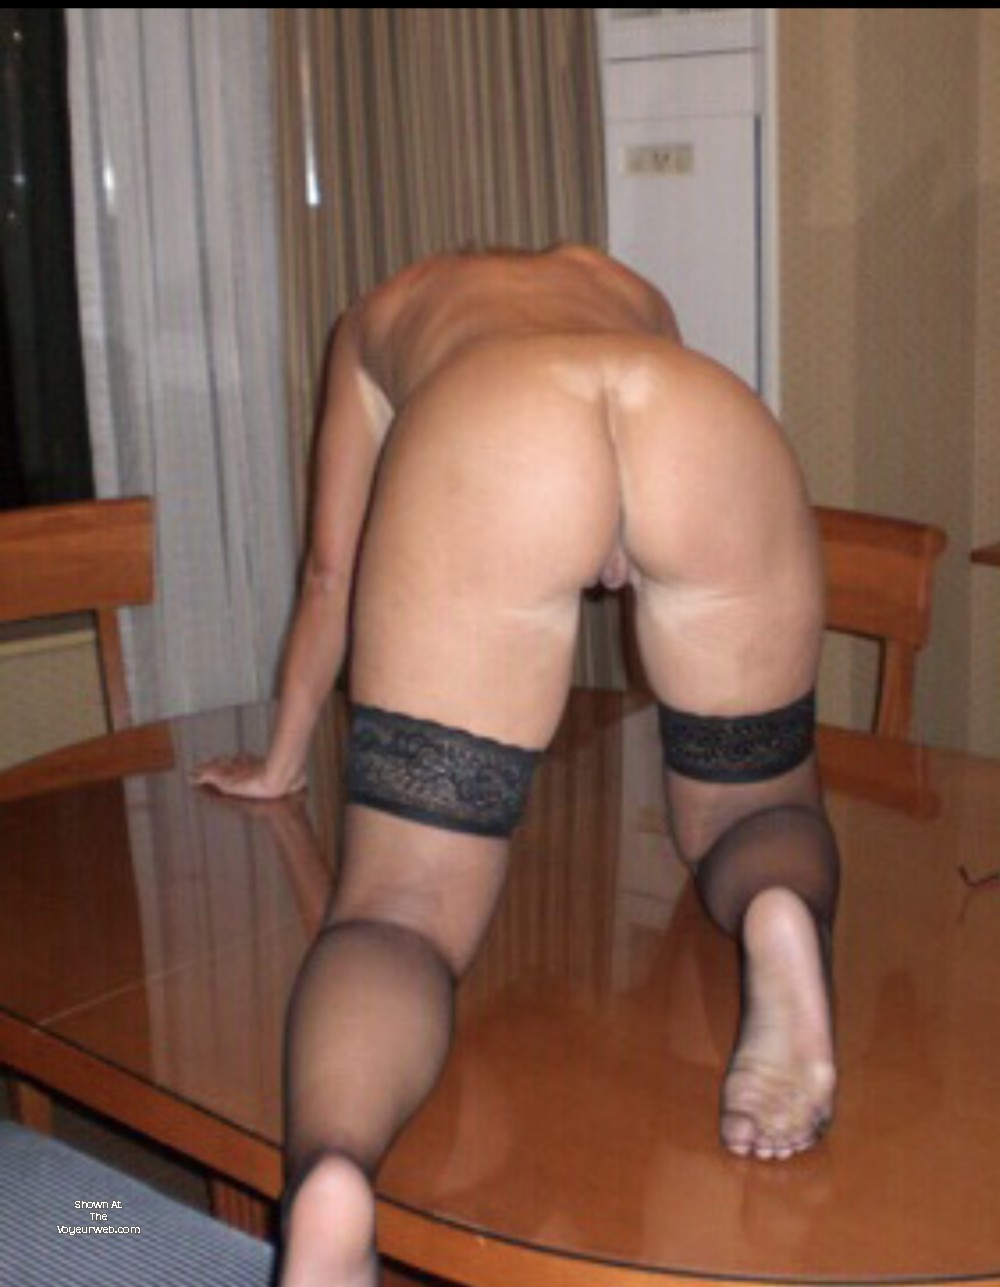 Pic #1My wife's ass - Mrs Lace